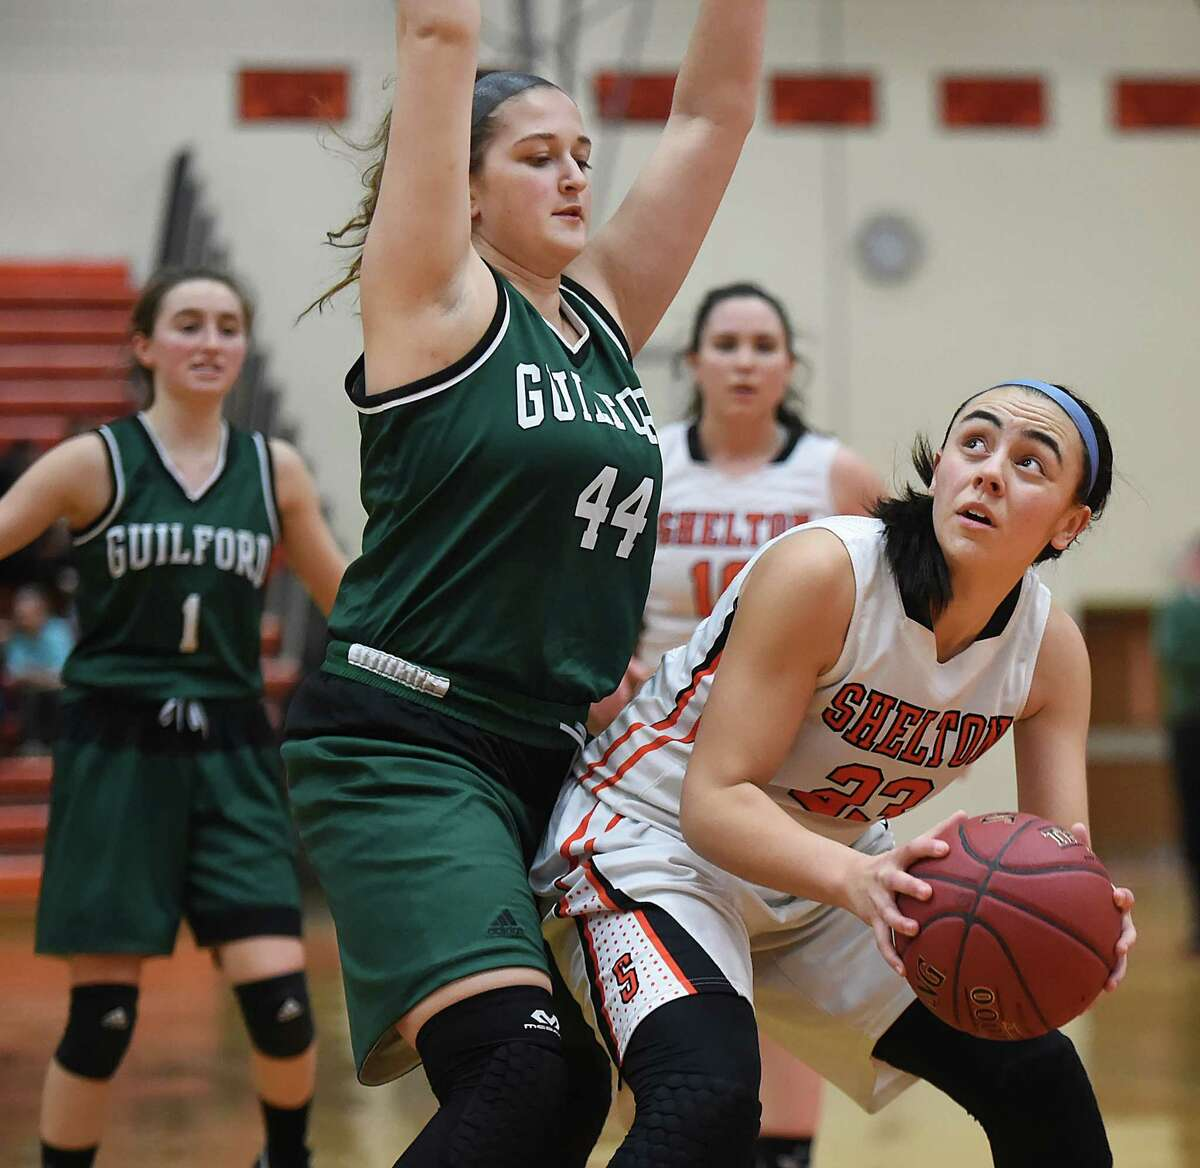 Shelton junior forward Kayla Resto eyes the hoop as Guilford senior guard/forward Nicole Suchy is ready to block the shot as the Indians defeat the Gaelettes, 63 - 40, Friday, January 20, 2017, at the Vincent J. Murray Memorial Gym at Shelton High School. (Catherine Avalone/New Haven Register)